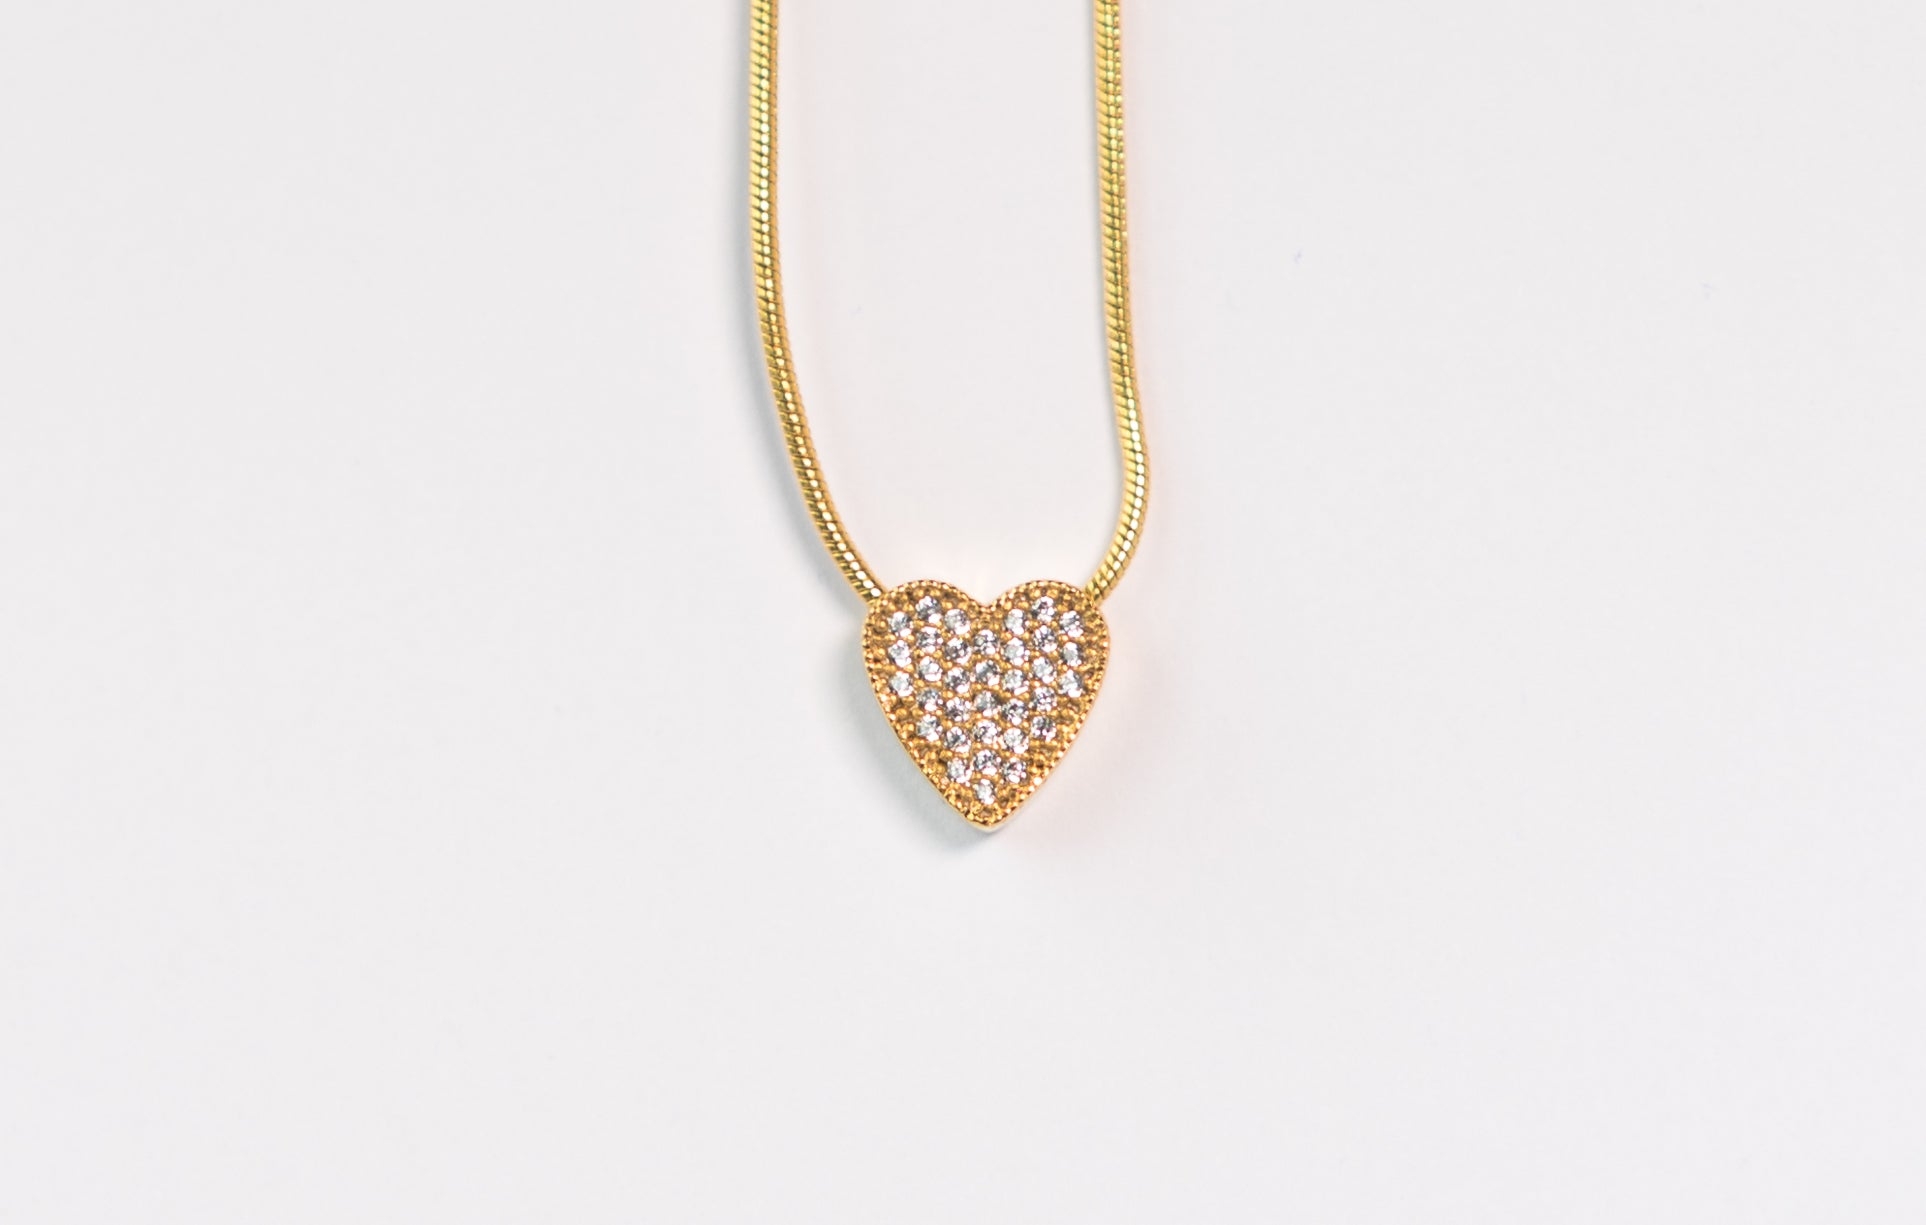 Golden Heart Necklace The Glared Gold